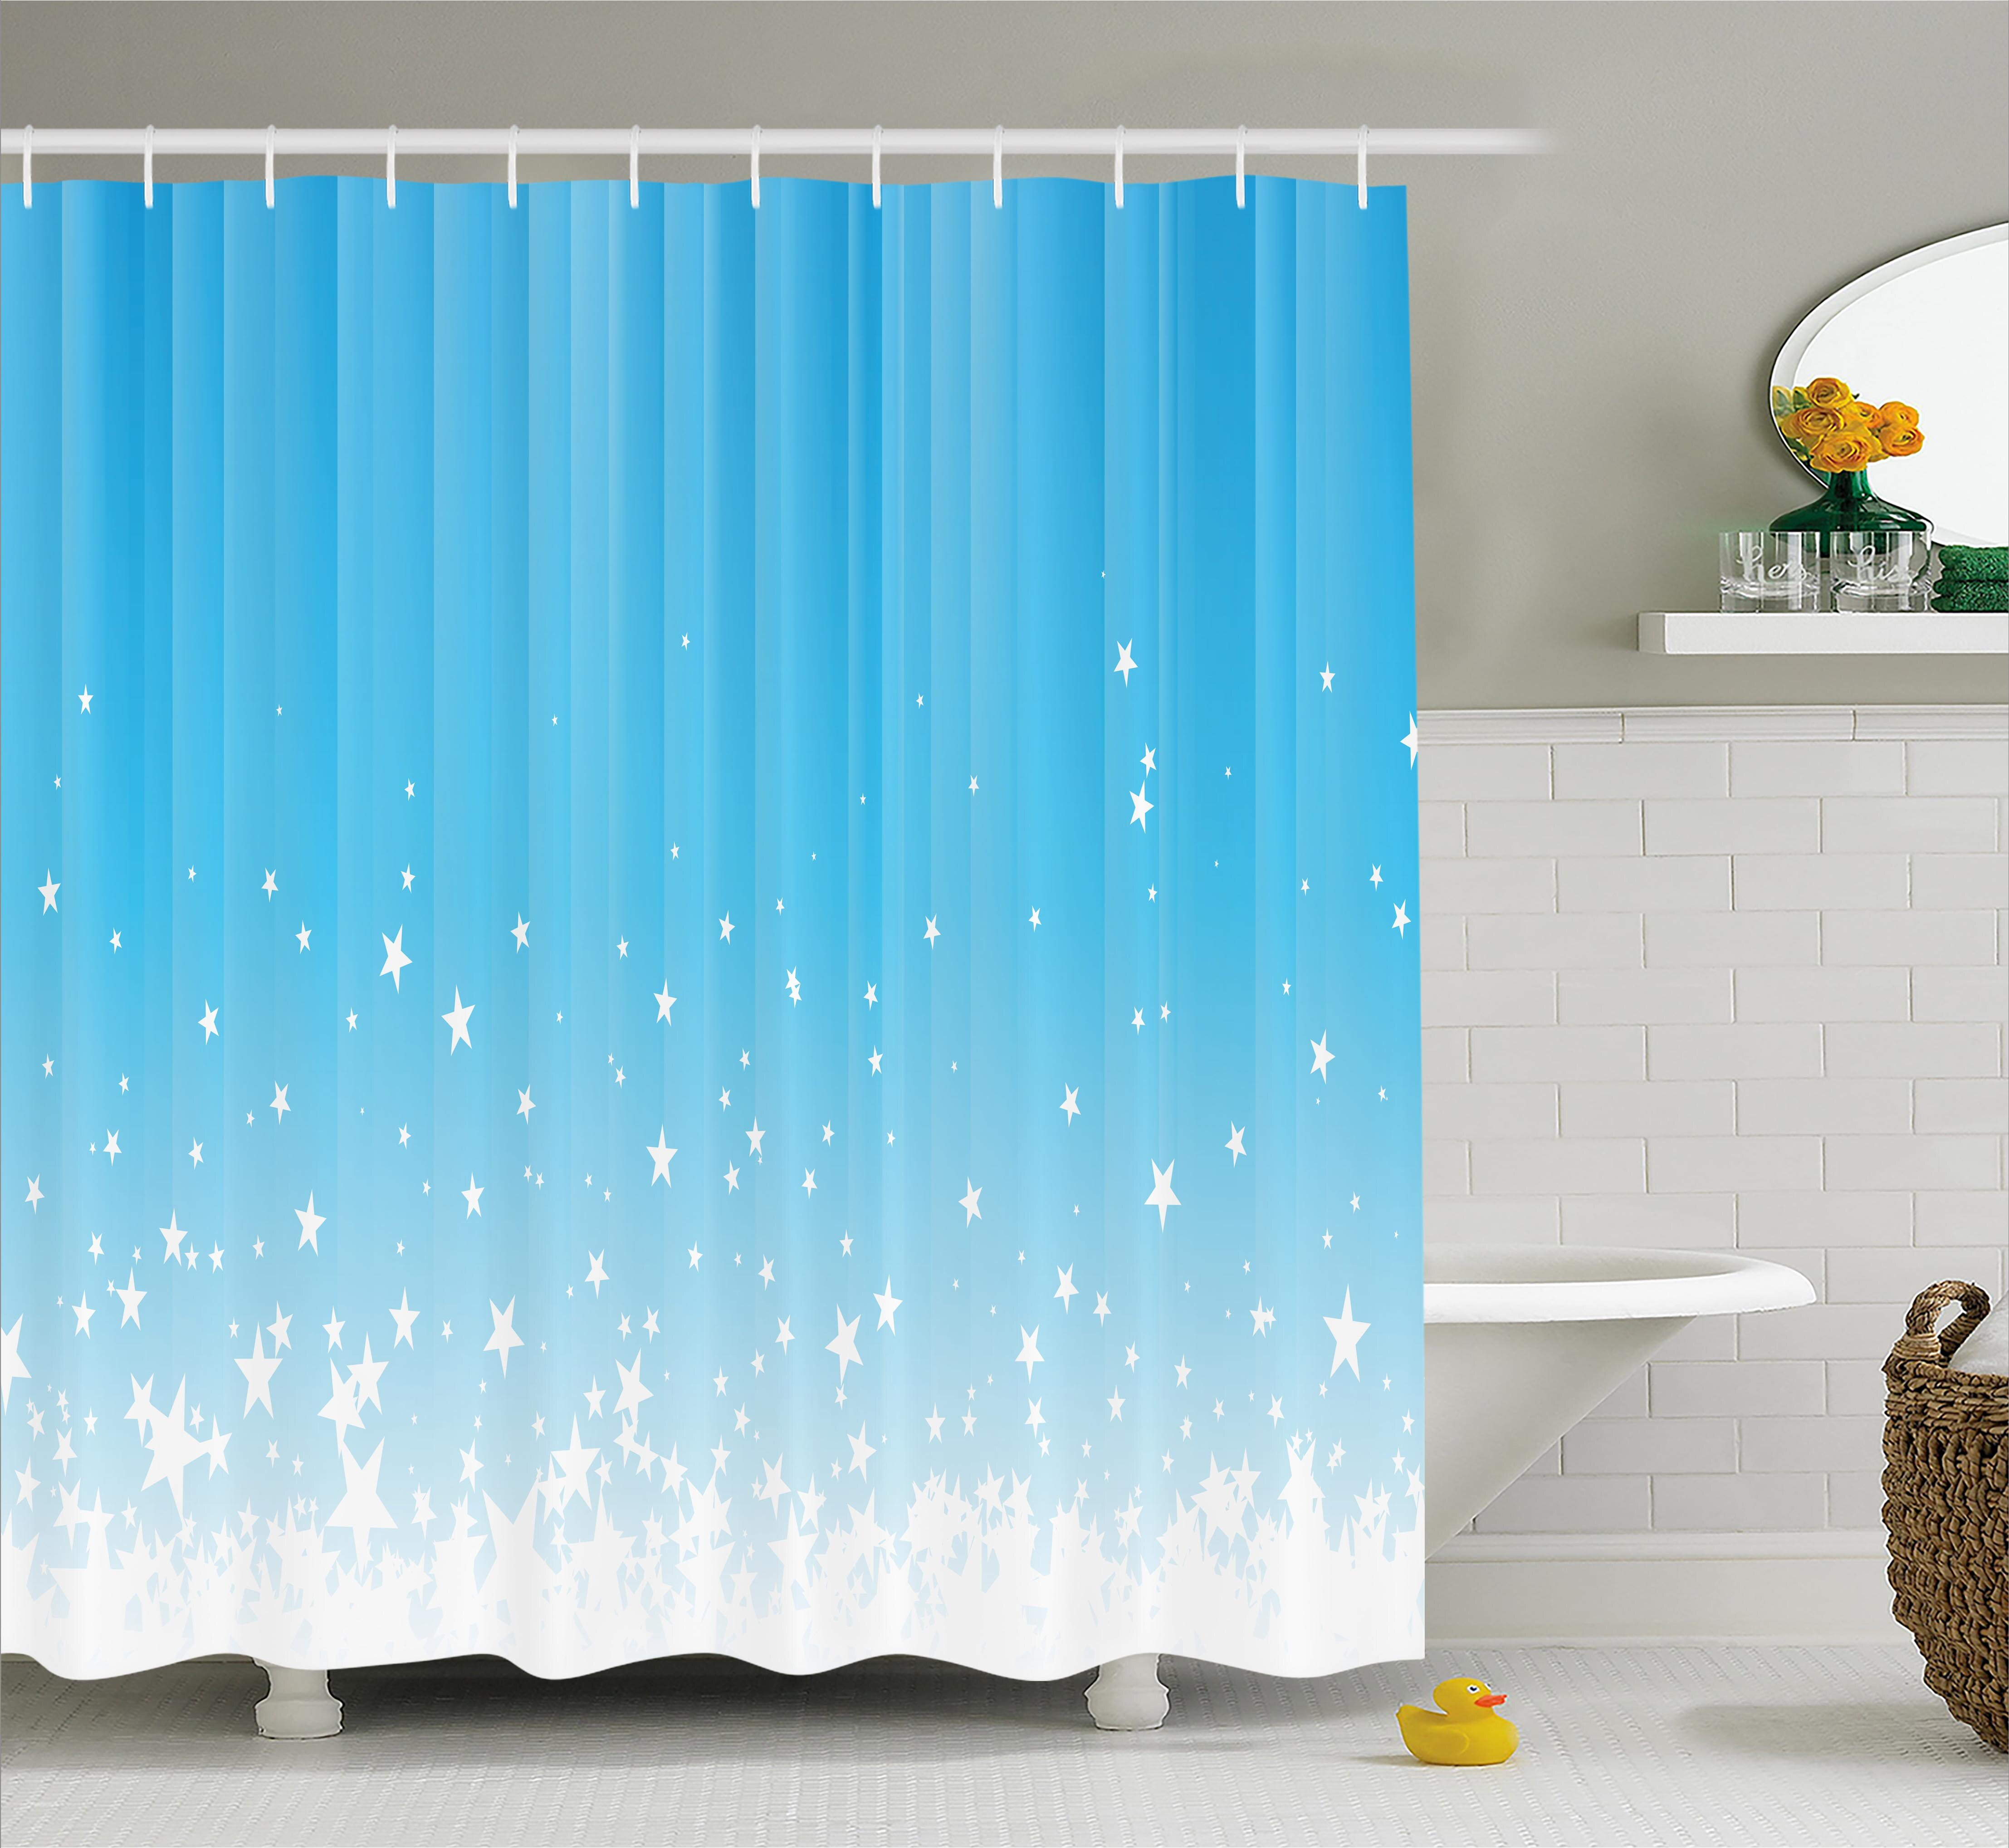 Zoomie Kids Marianne Star Vibrant Celestial Shower Curtain ...